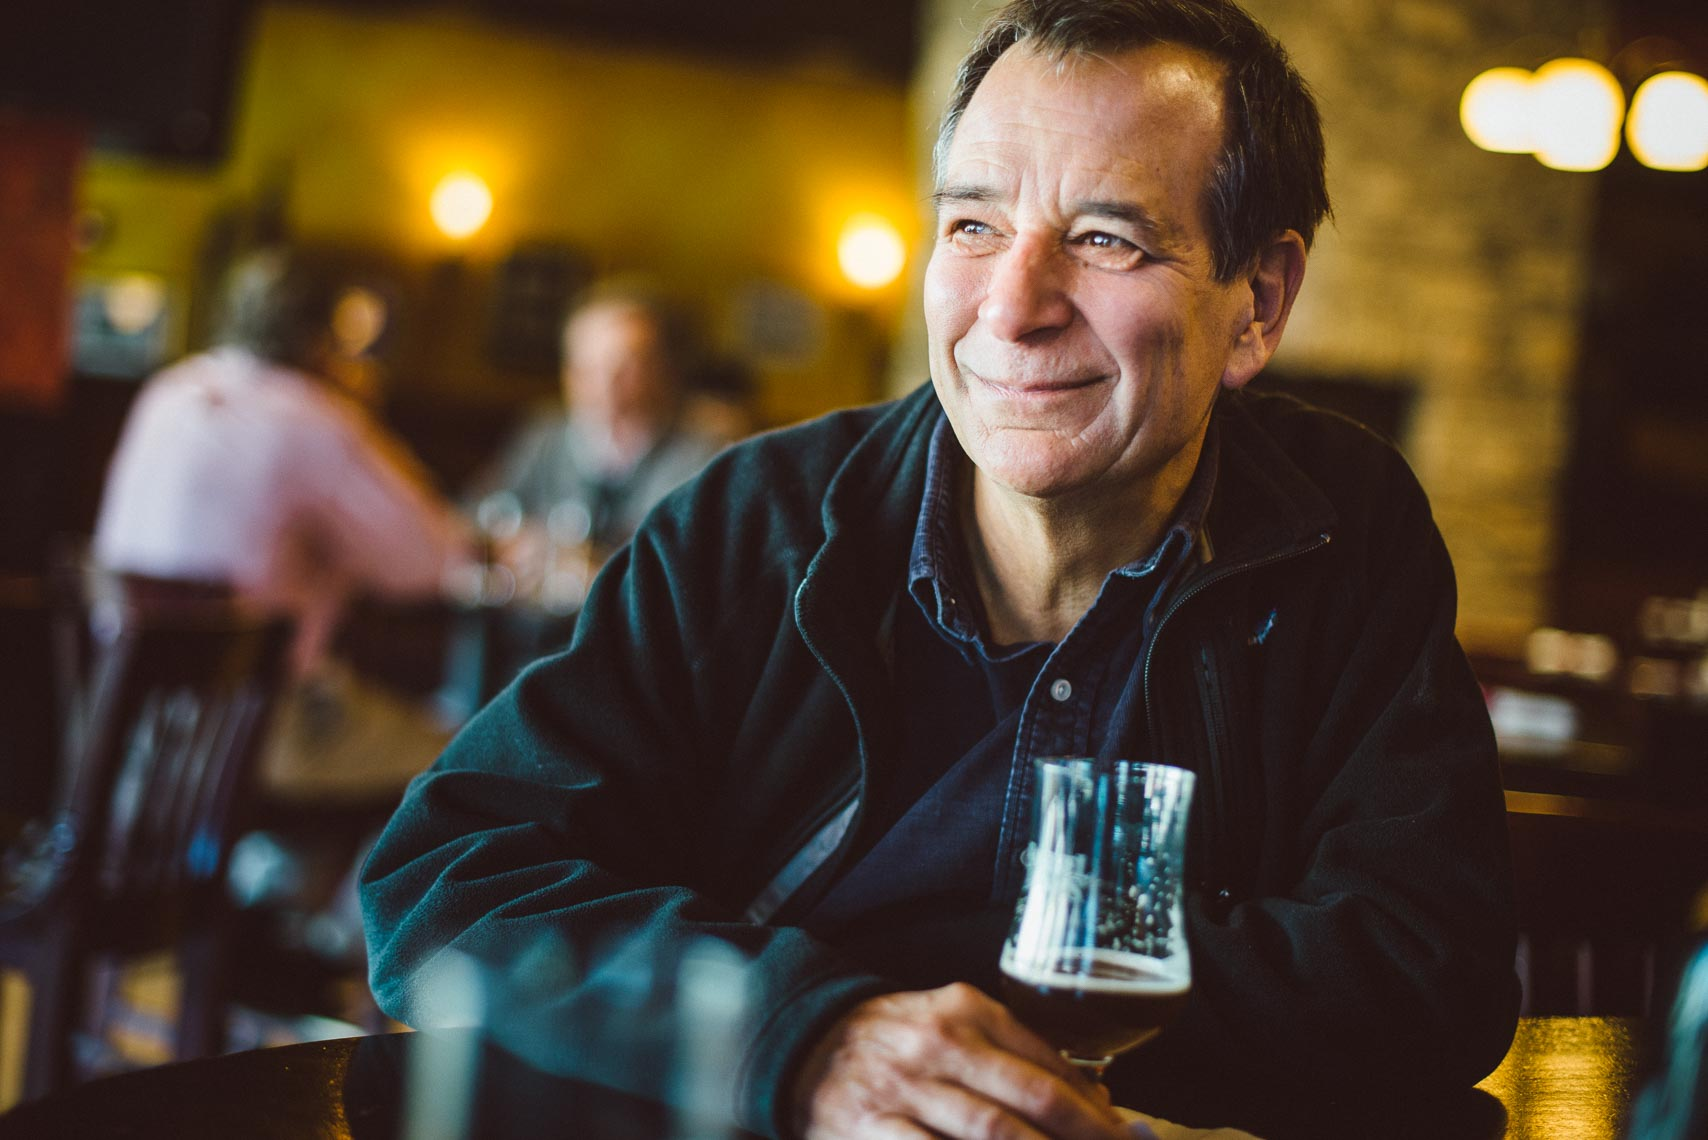 Jim Koch – Sam Adams Brewery